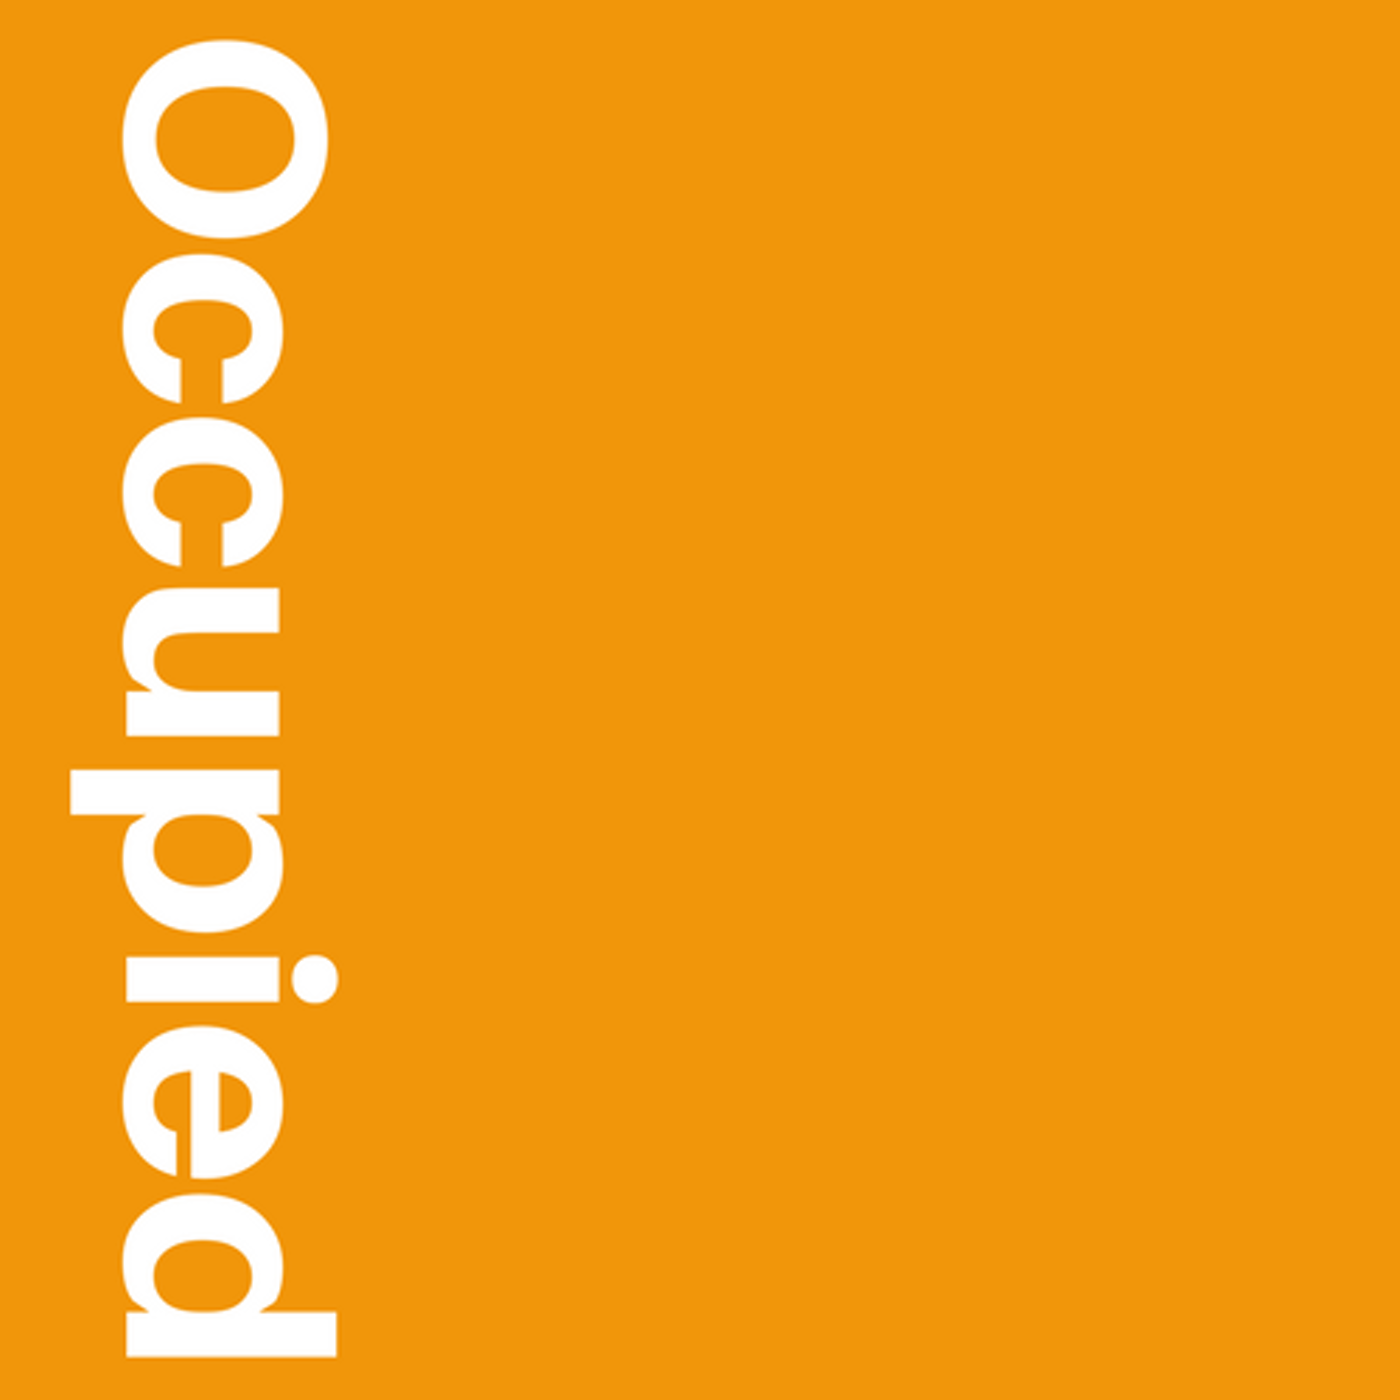 Occupied occupational therapy